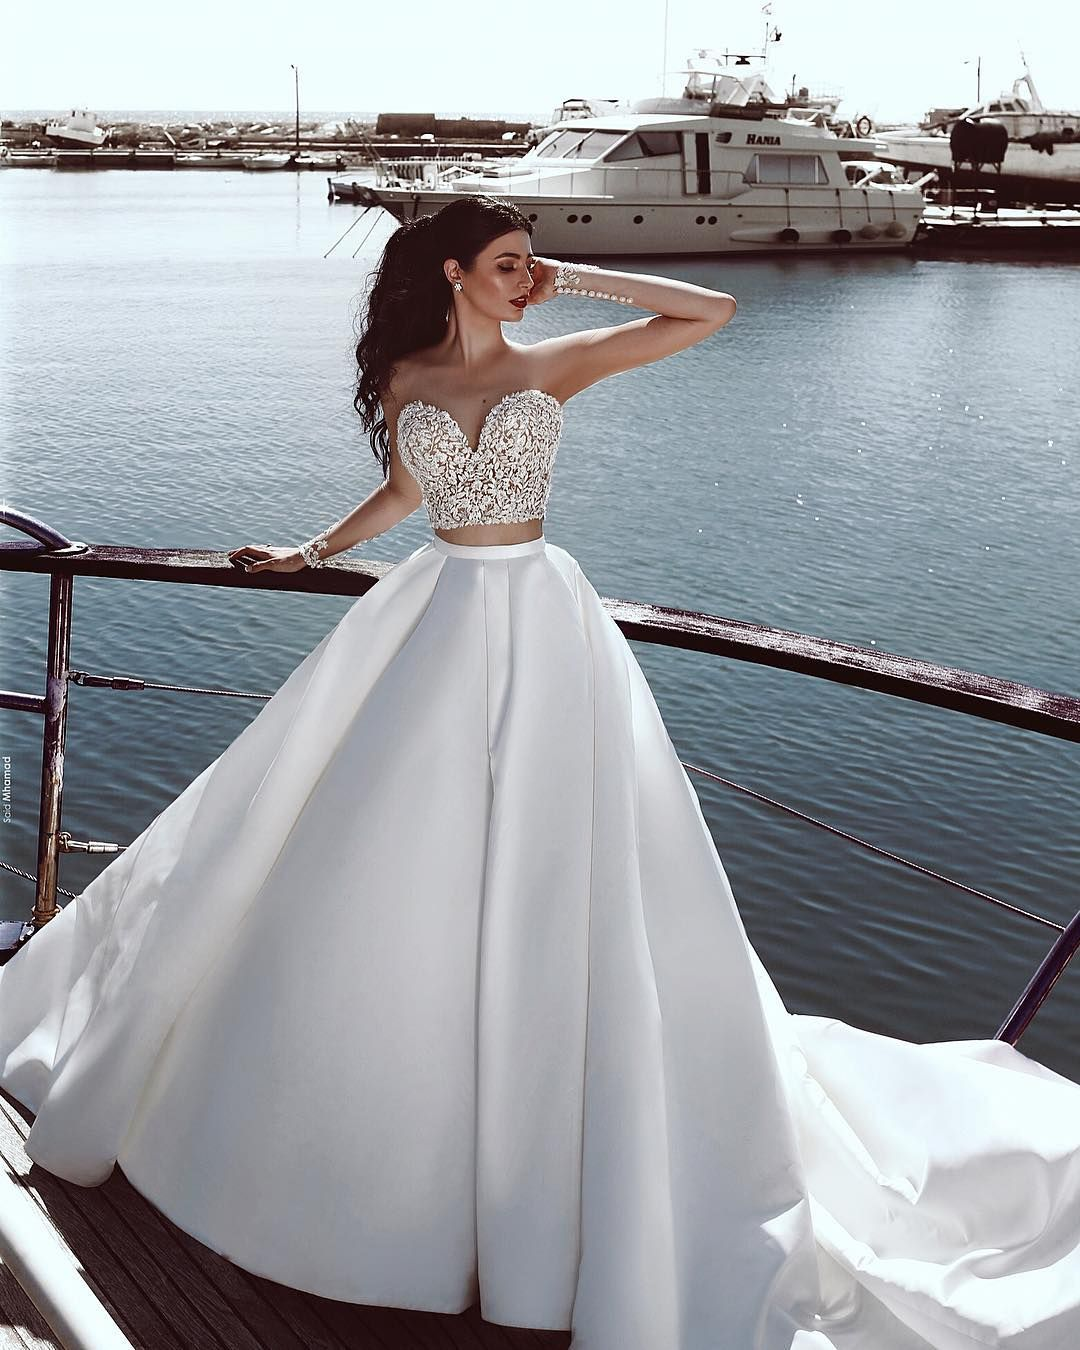 The Sky S The Limit For Our Beautiful Bride Michelle Saidmhamadphotography Ball Gown Wedding Dress Backless Wedding Dress Bridal Gowns